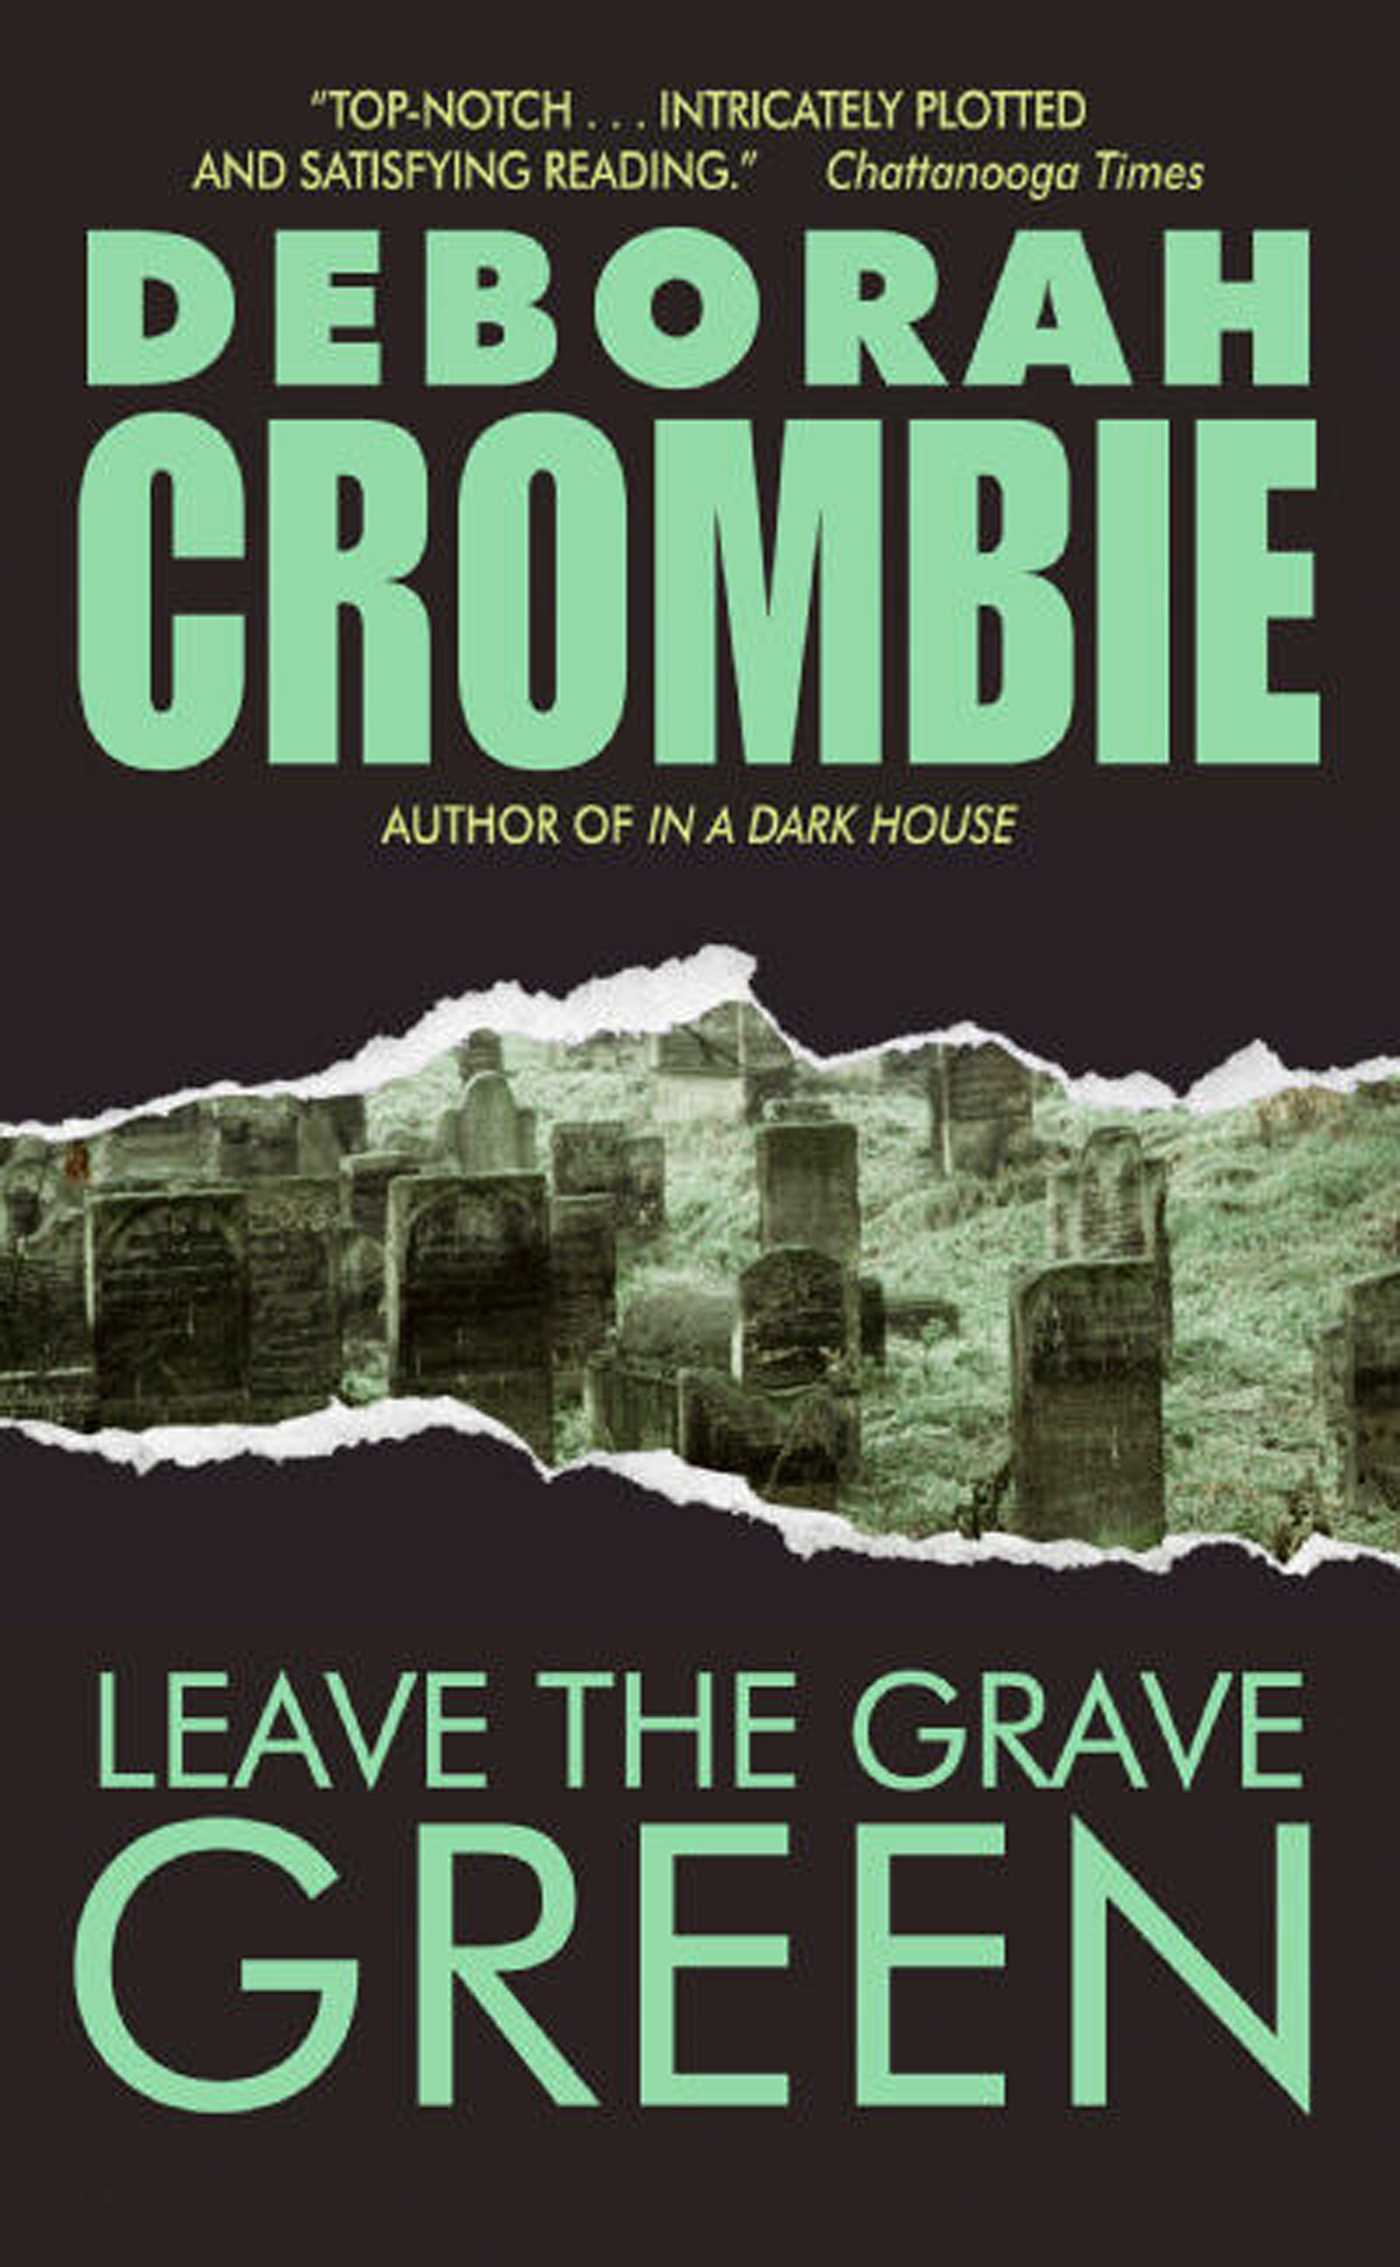 Leave the grave green 9781451617641 hr